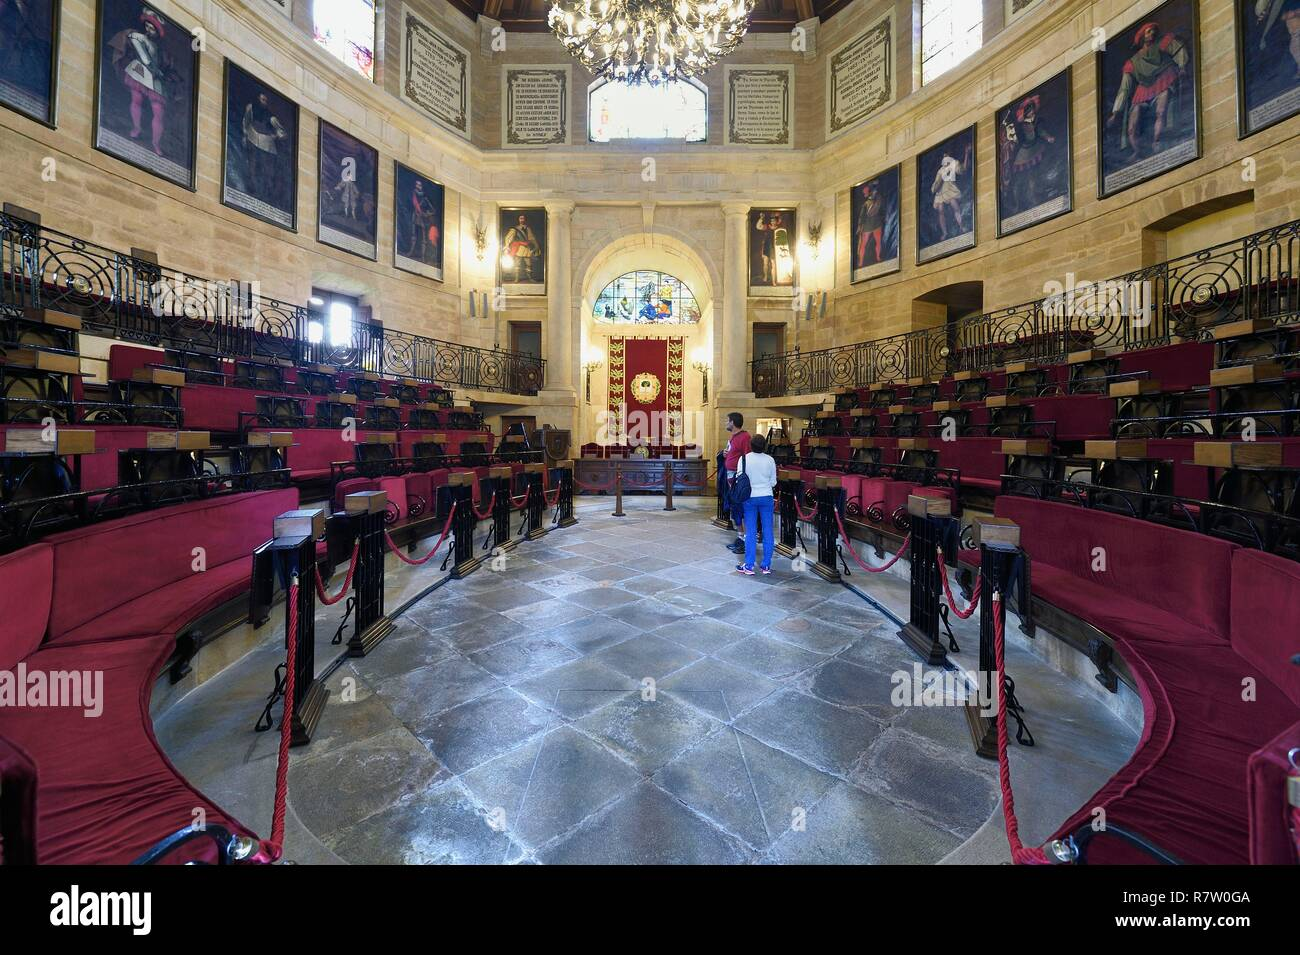 Spain, Basque Country, Biscay Province, Gernika-Lumo, House of Assemblies (Casa de Juntas), the parlement - Stock Image